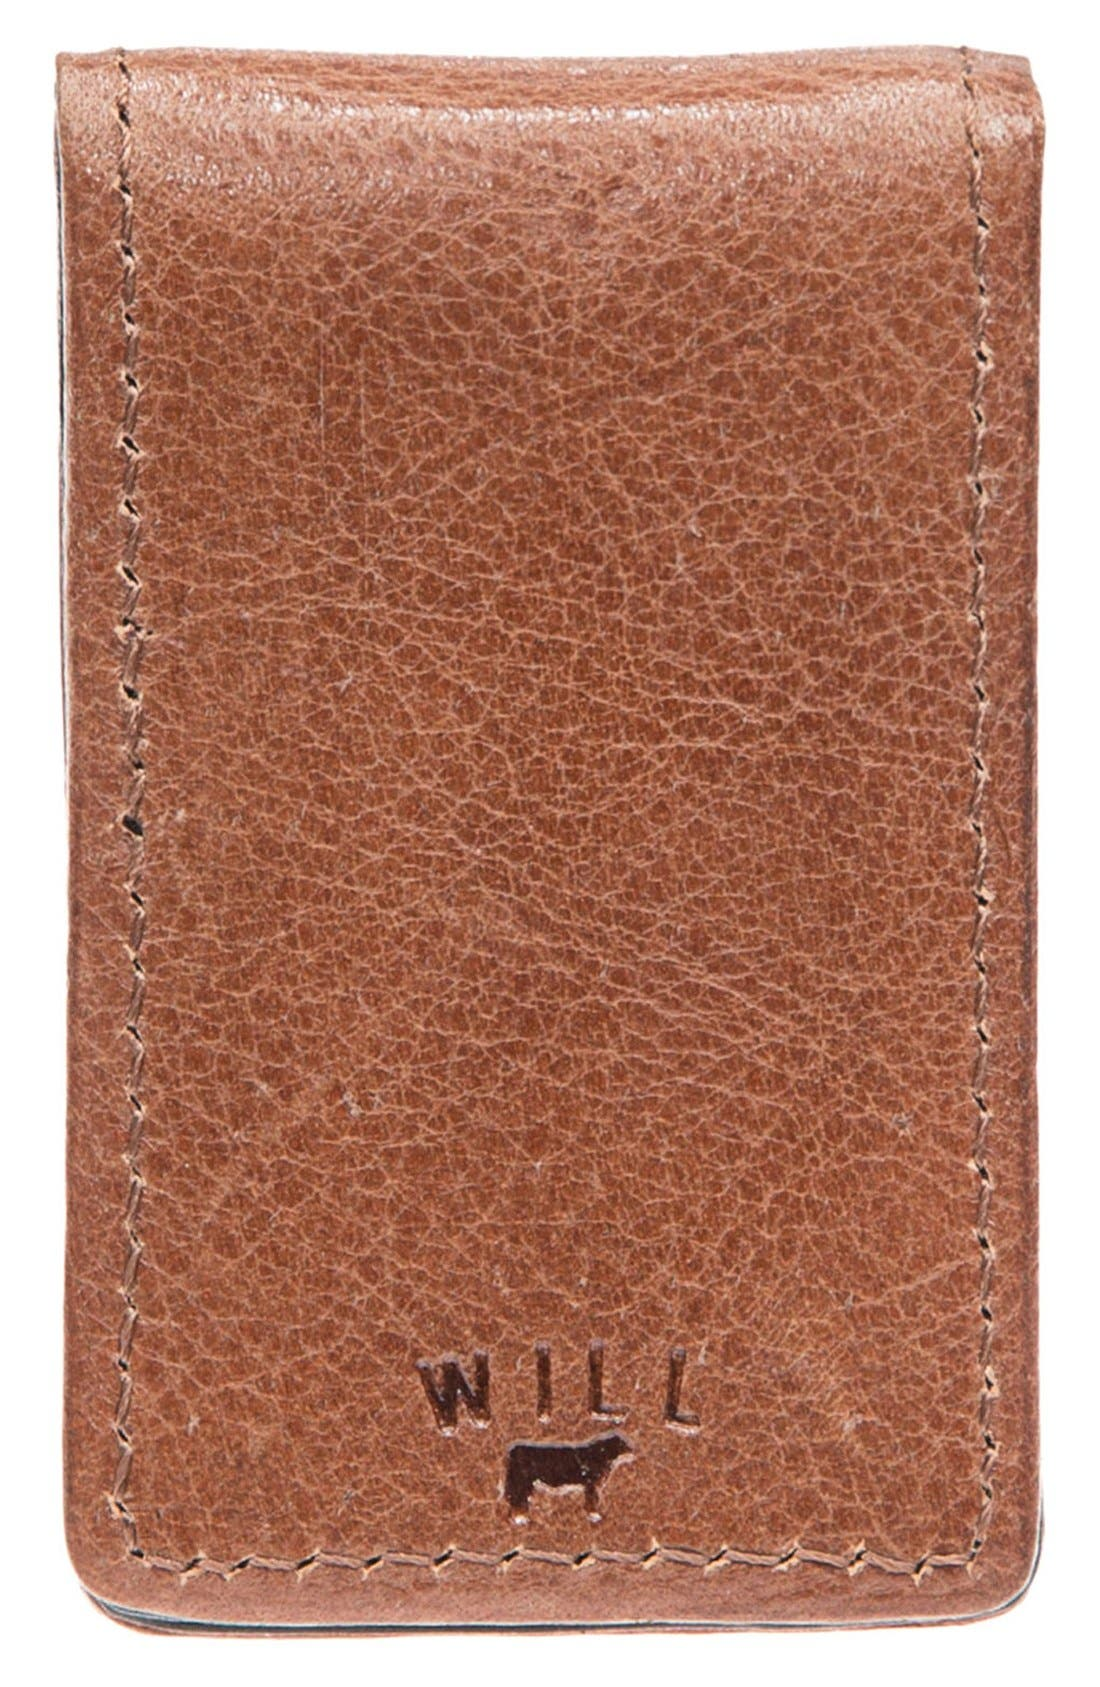 Alternate Image 2  - Will Leather Goods 'Cibreo' Money Clip